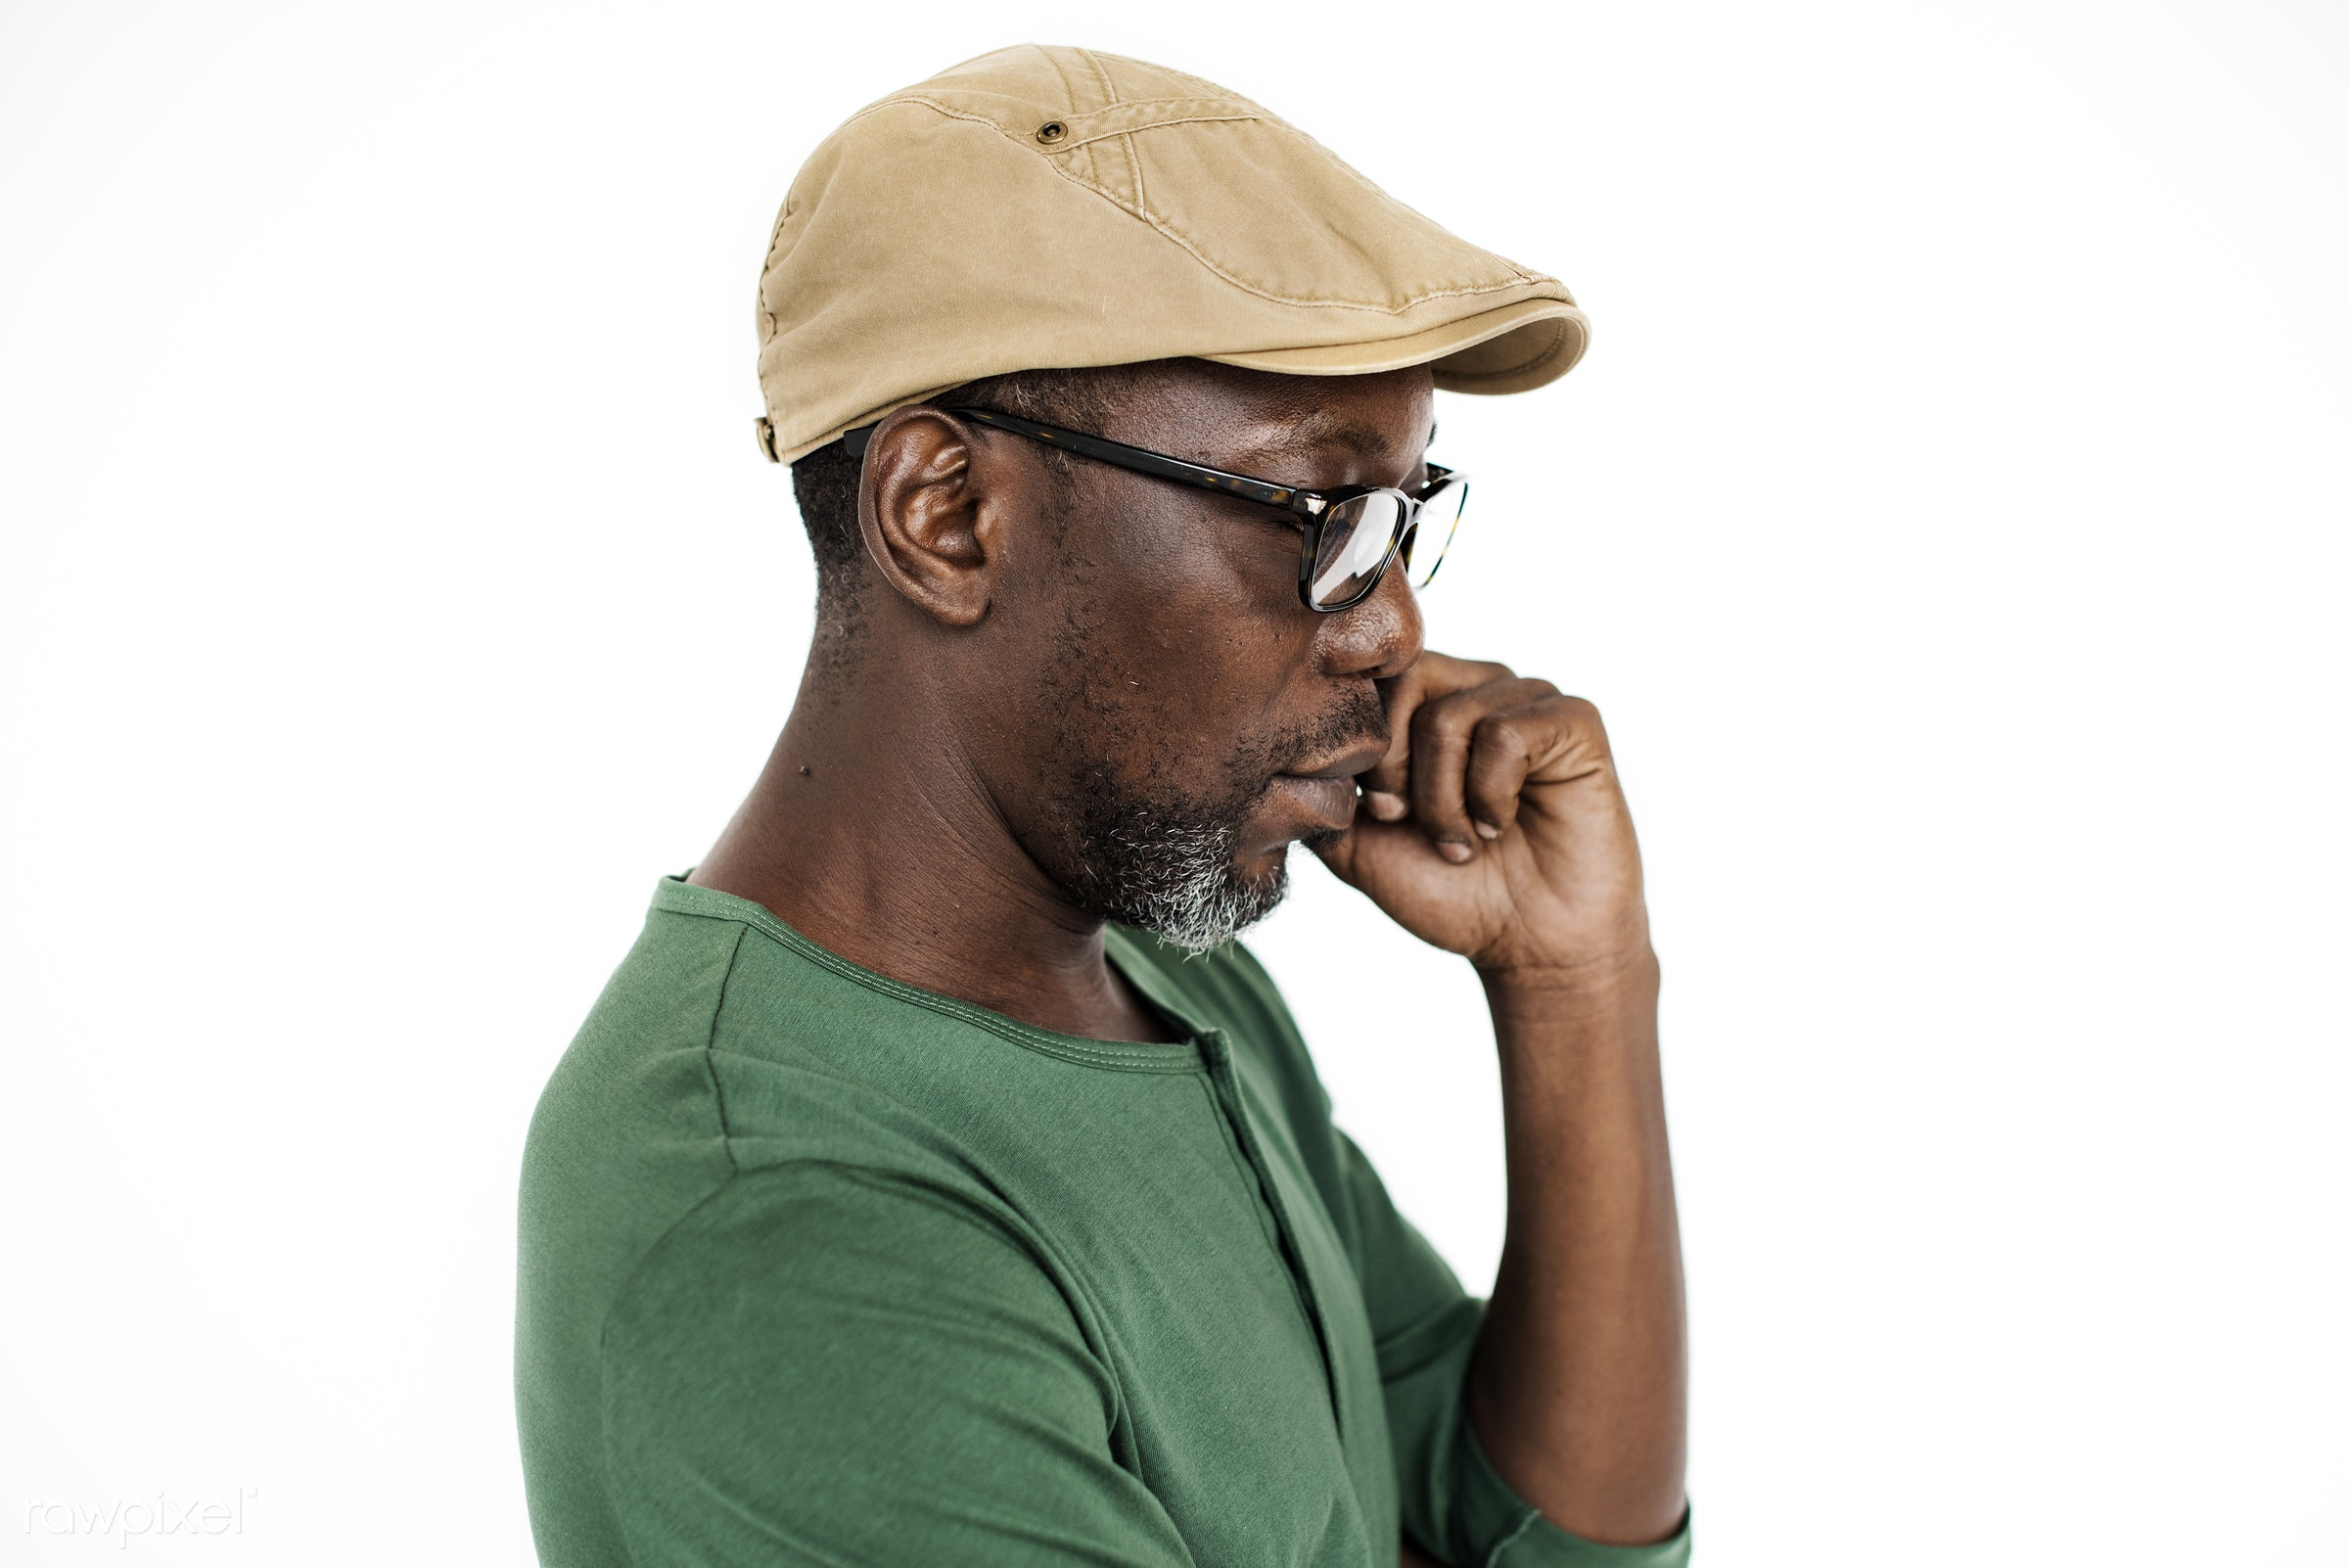 expression, calm, studio, face, golf cap, person, african, cap, isolated on white, photography, casual, cheerful, smiling,...